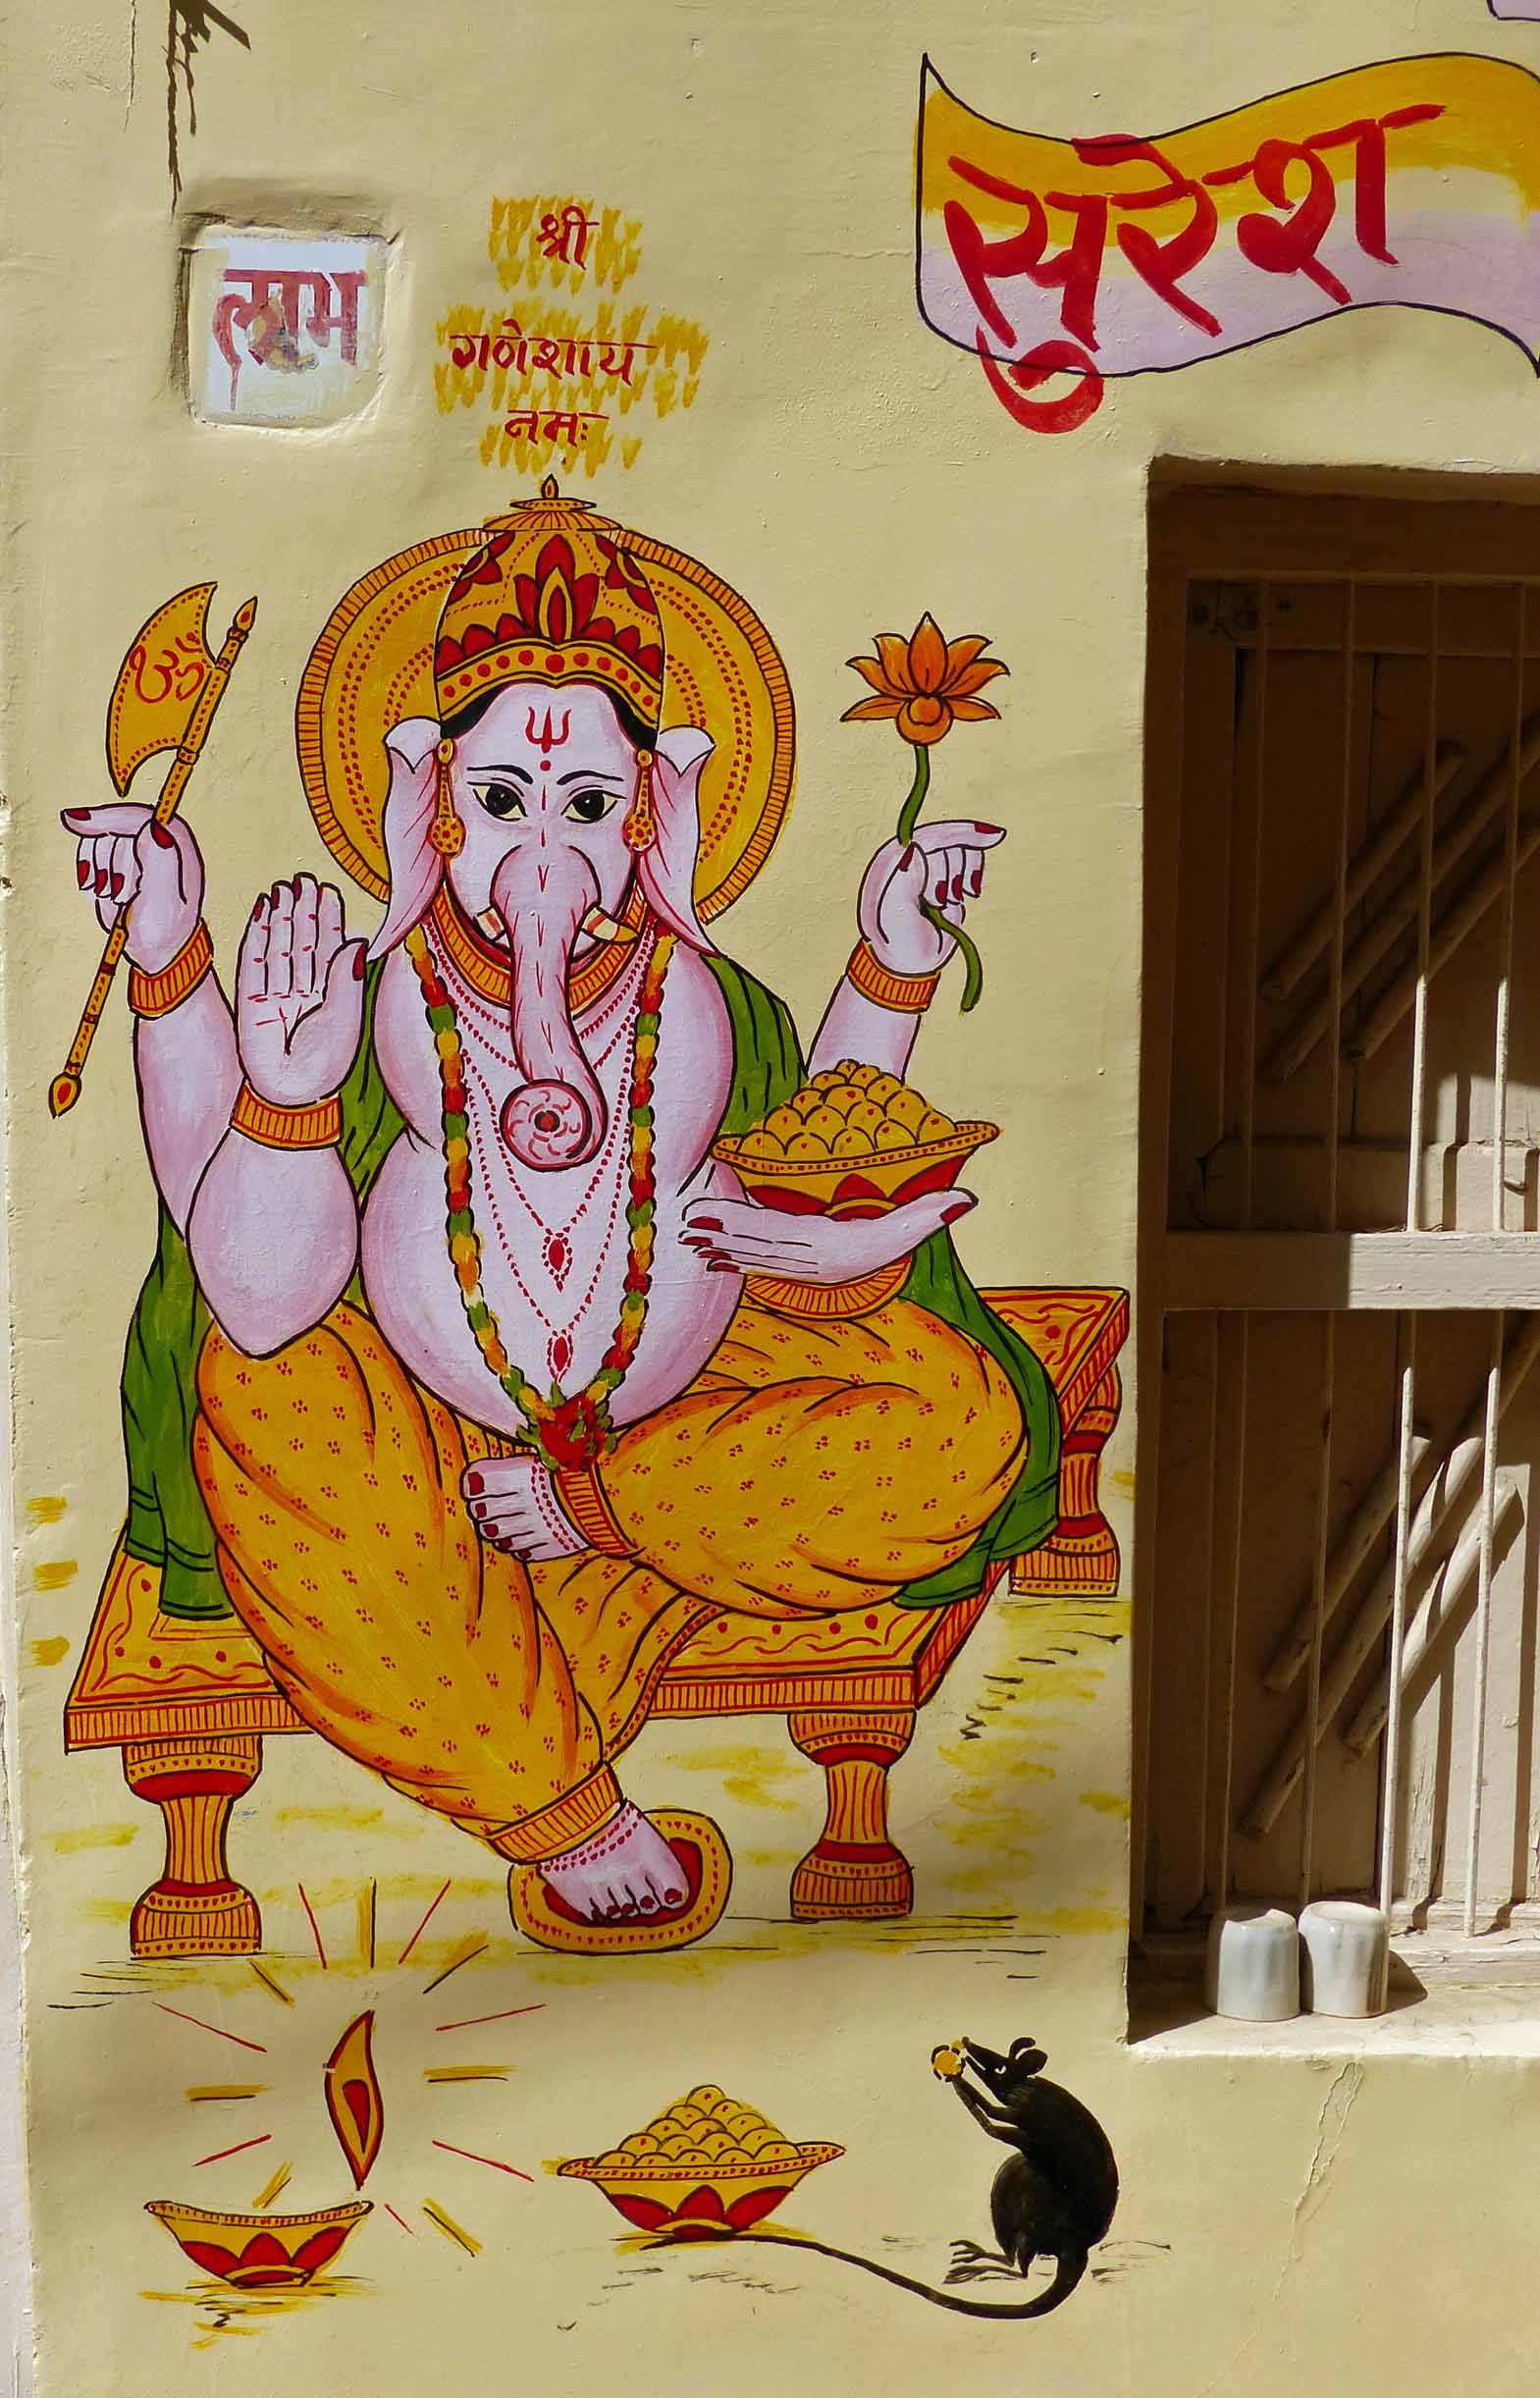 Painting of elephant headed god and small mouse